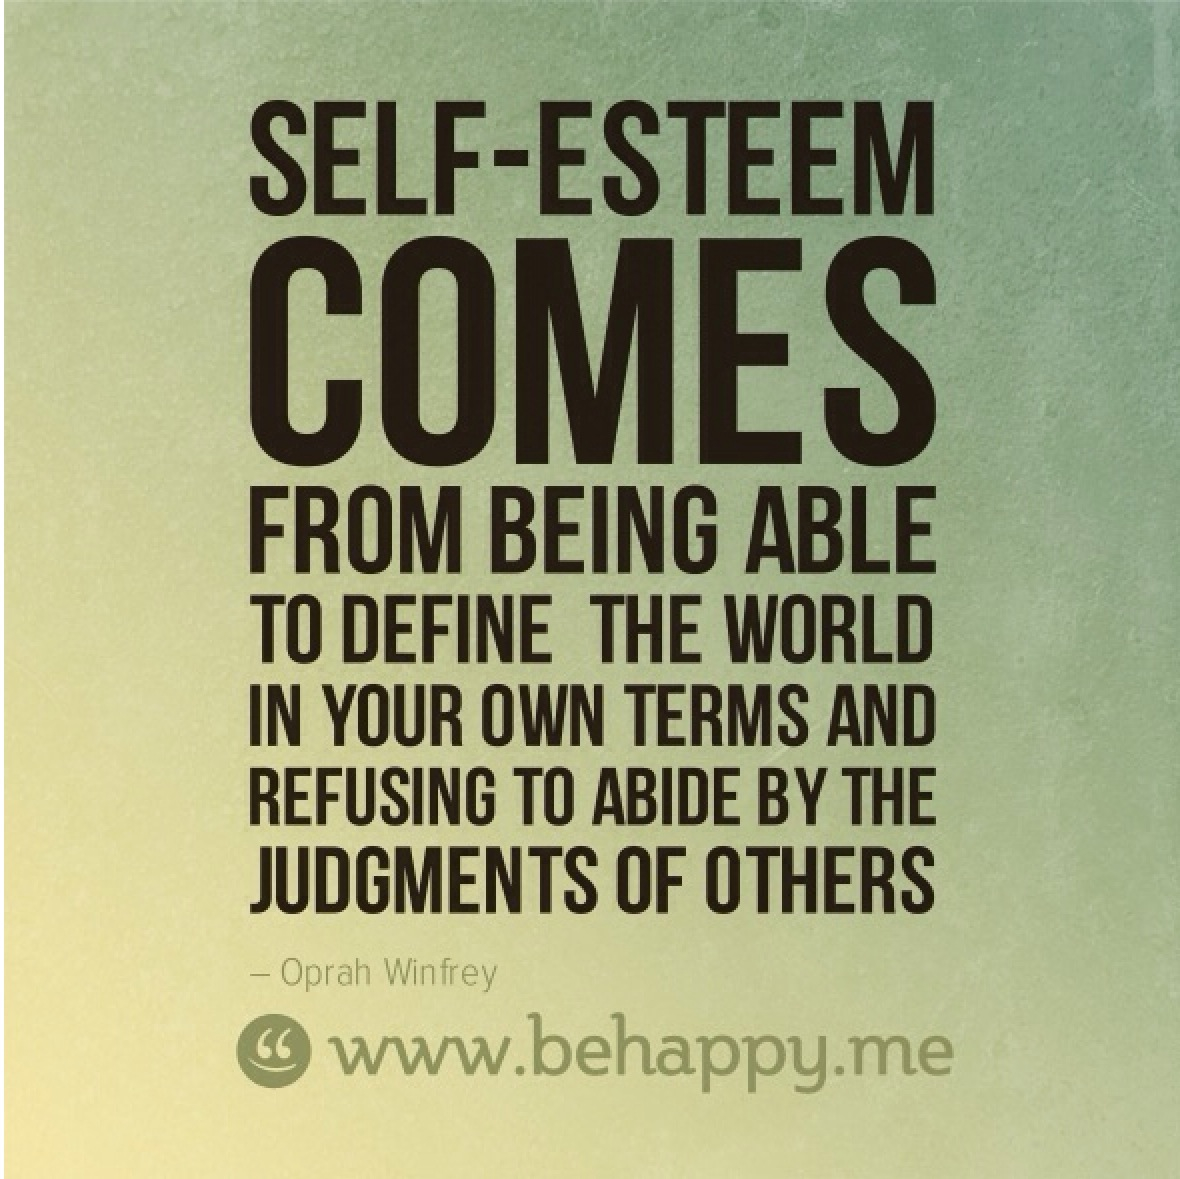 Quotes About Self Esteem Quotes About Self Esteem New Best 25 Self Esteem Quotes Ideas On